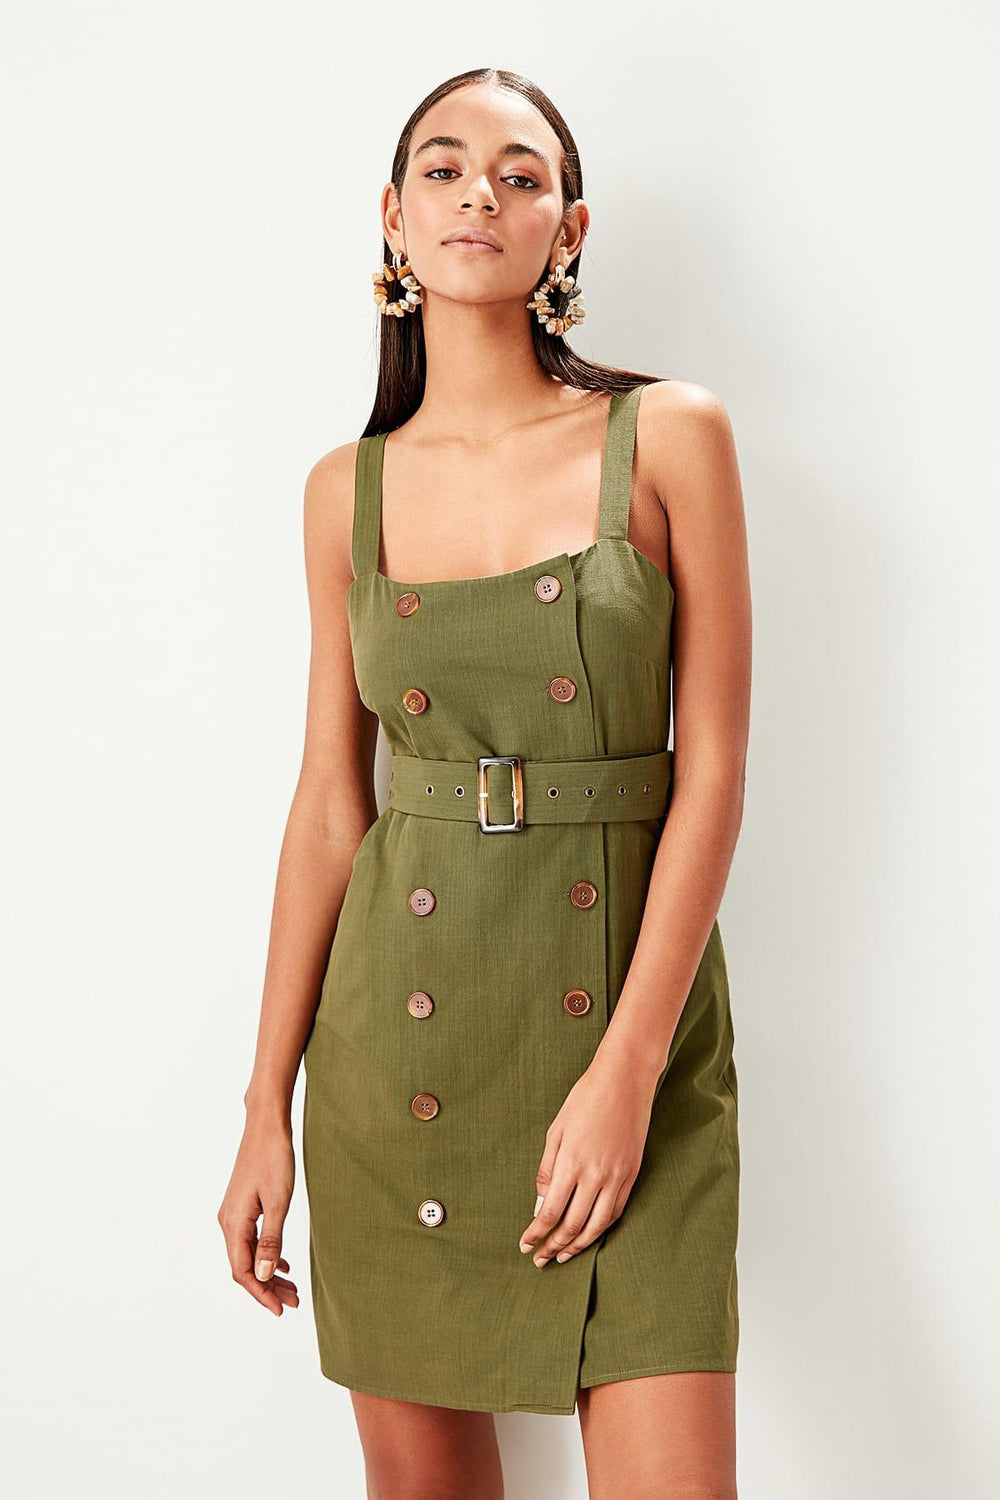 Khaki Button Detail Mini Dress - Top Maxy